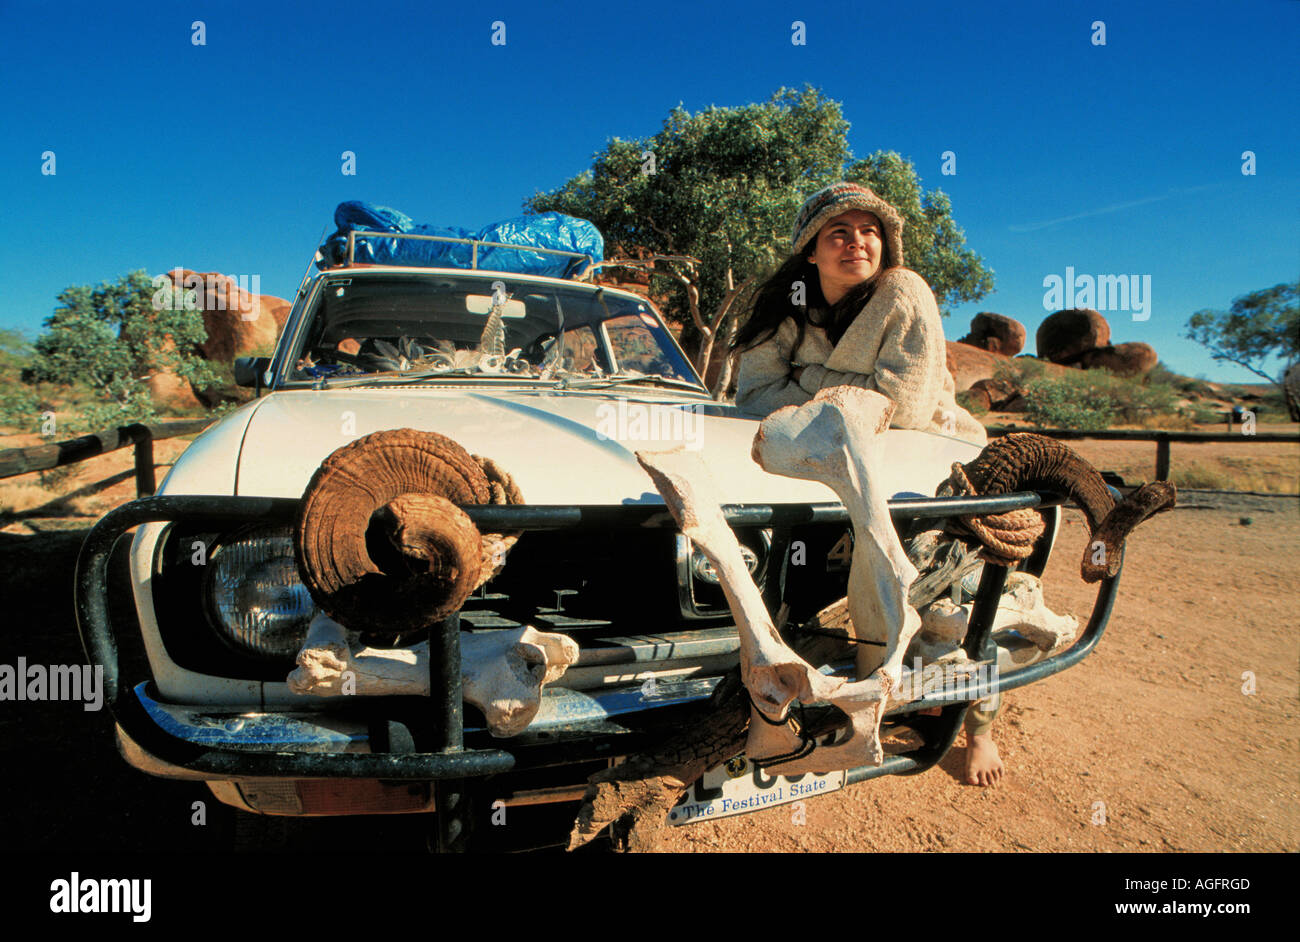 woman with decorated car, Northern Territory, Australia - Stock Image